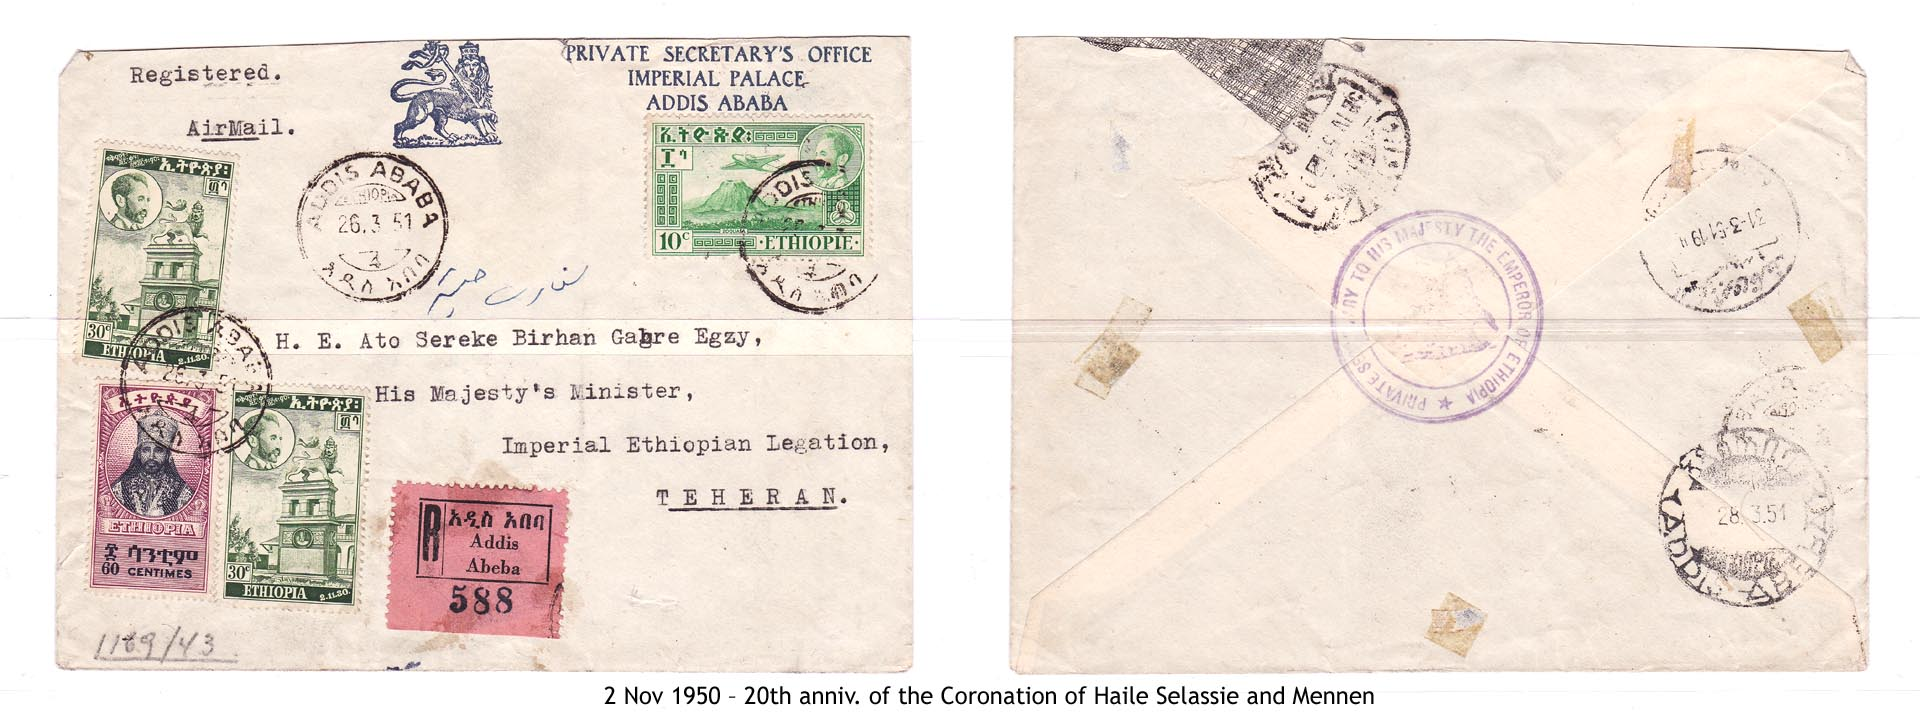 19501102 – 20th anniv. of the Coronation of Haile Selassie and Mennen